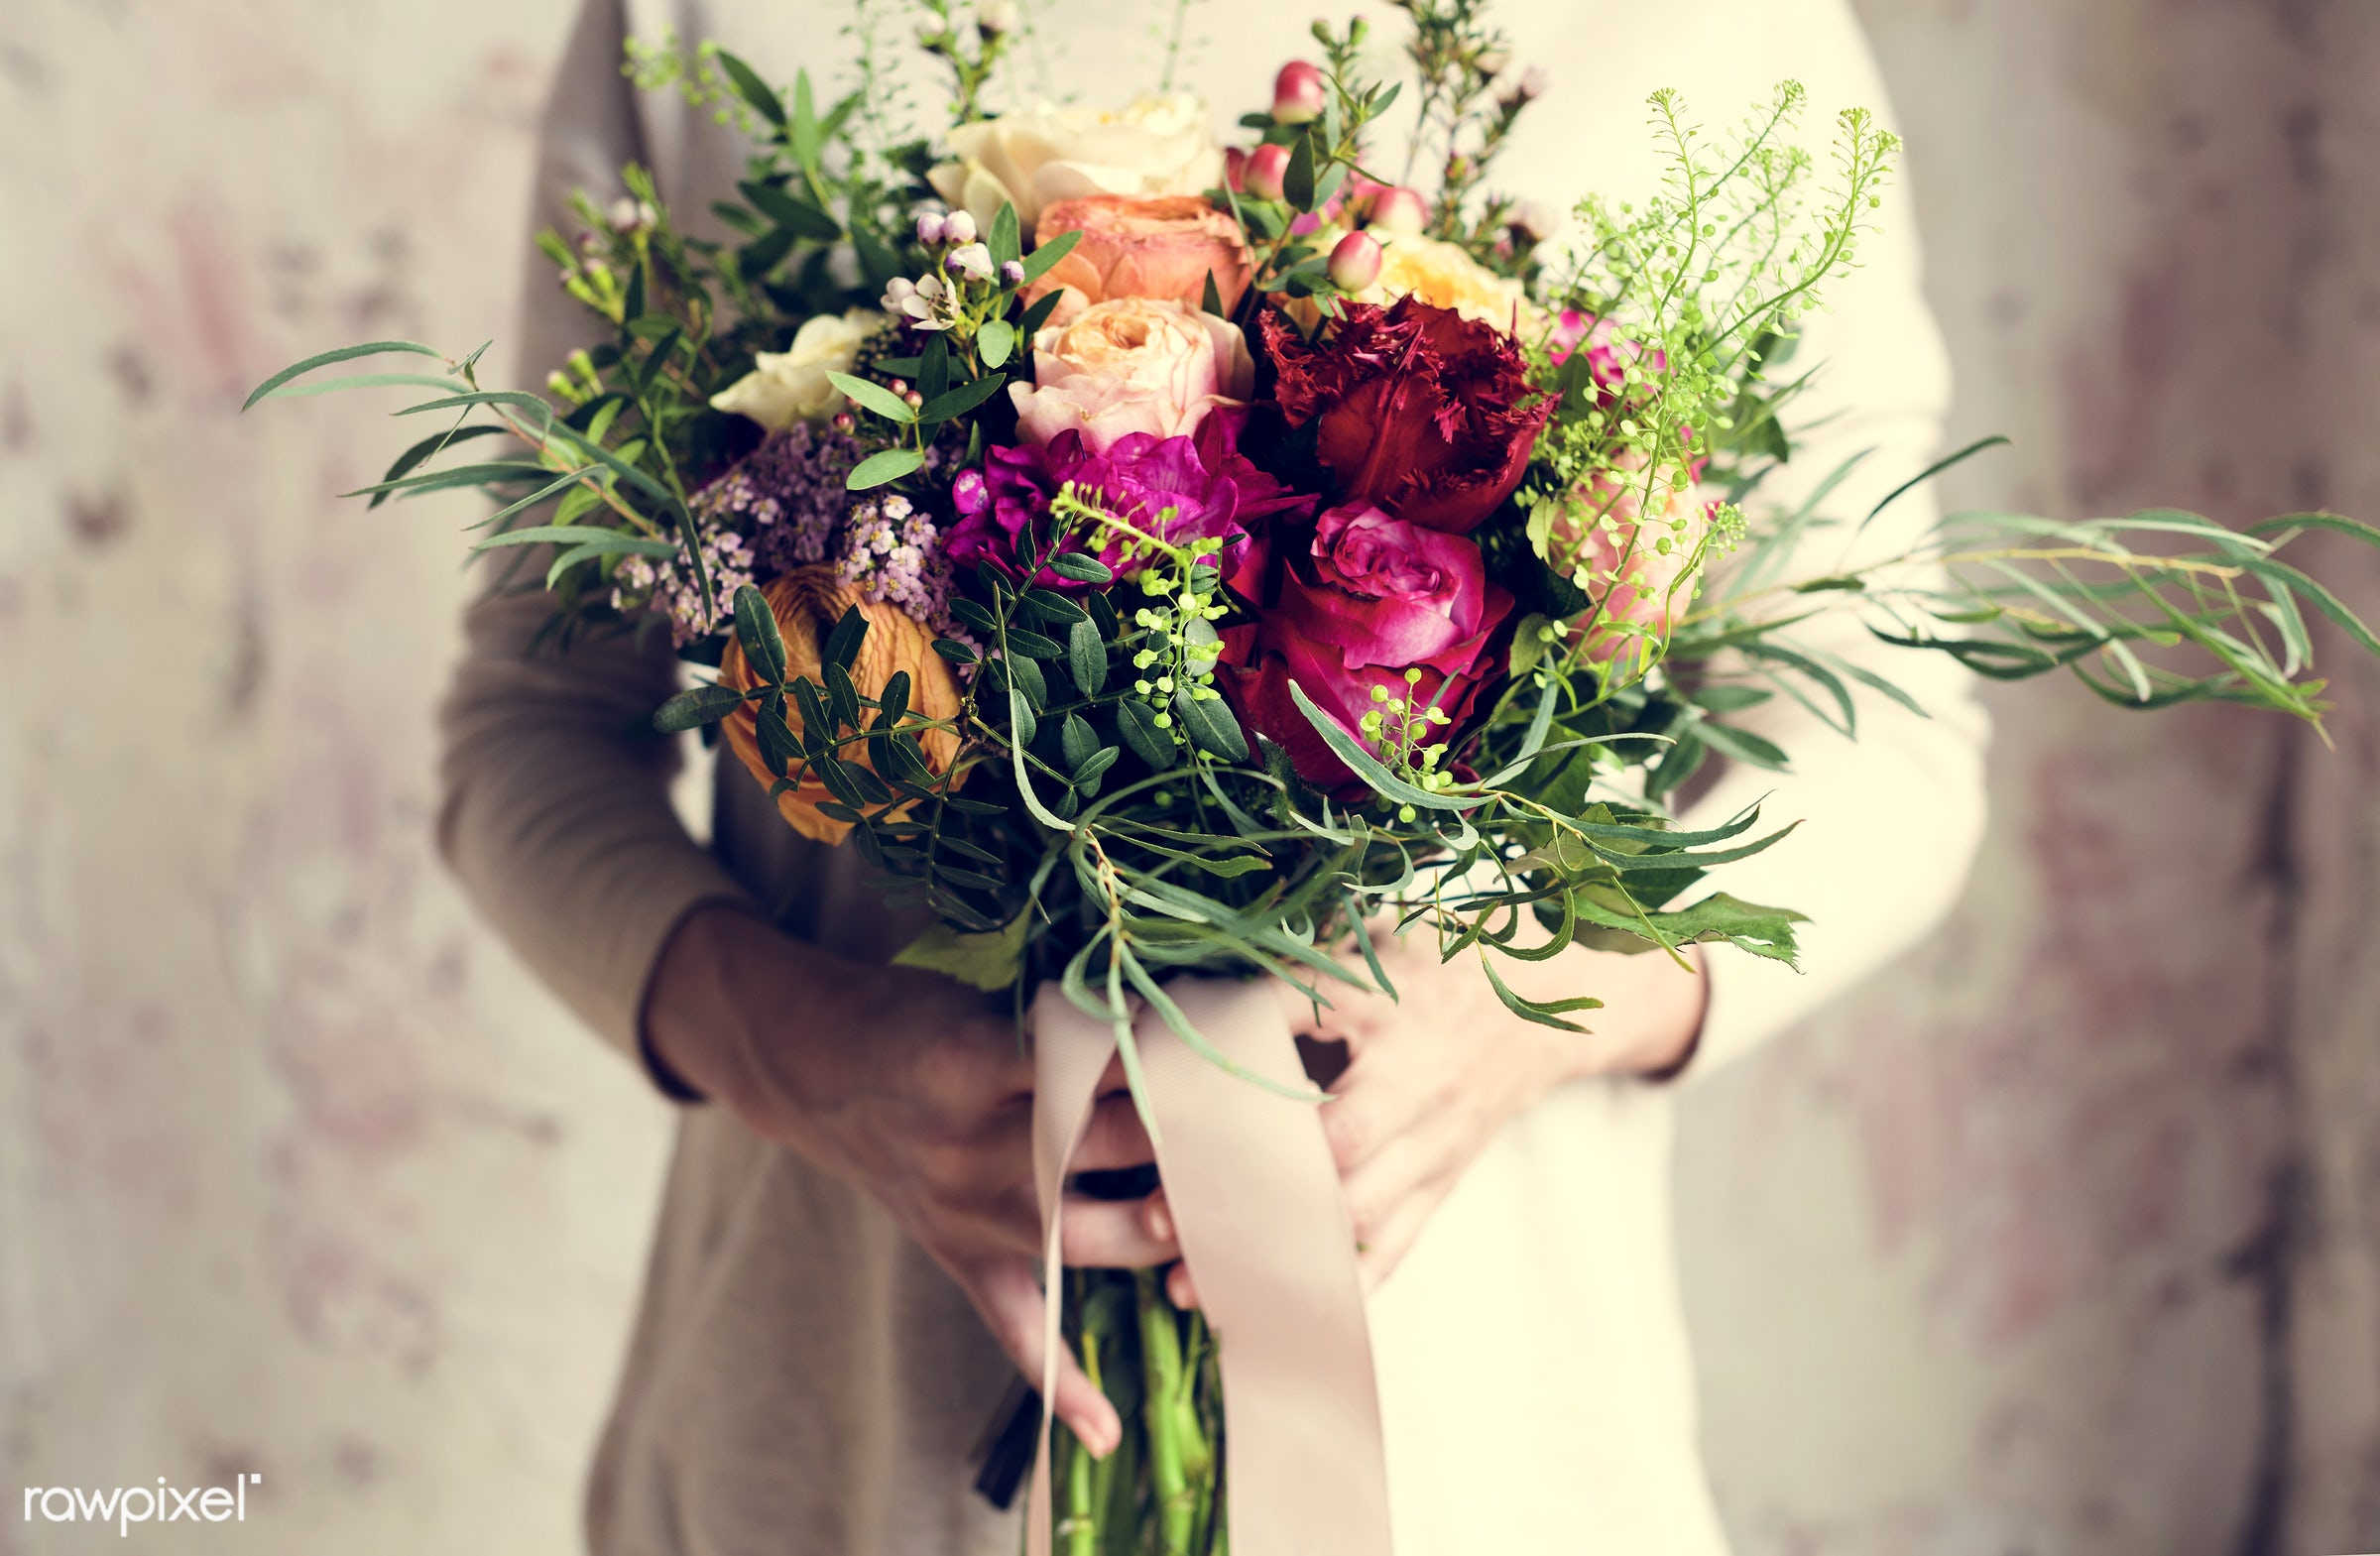 bouquet, detail, person, diverse, holding, show, people, decor, love, nature, woman, ribbon, care, flowers, cheerful, hold,...